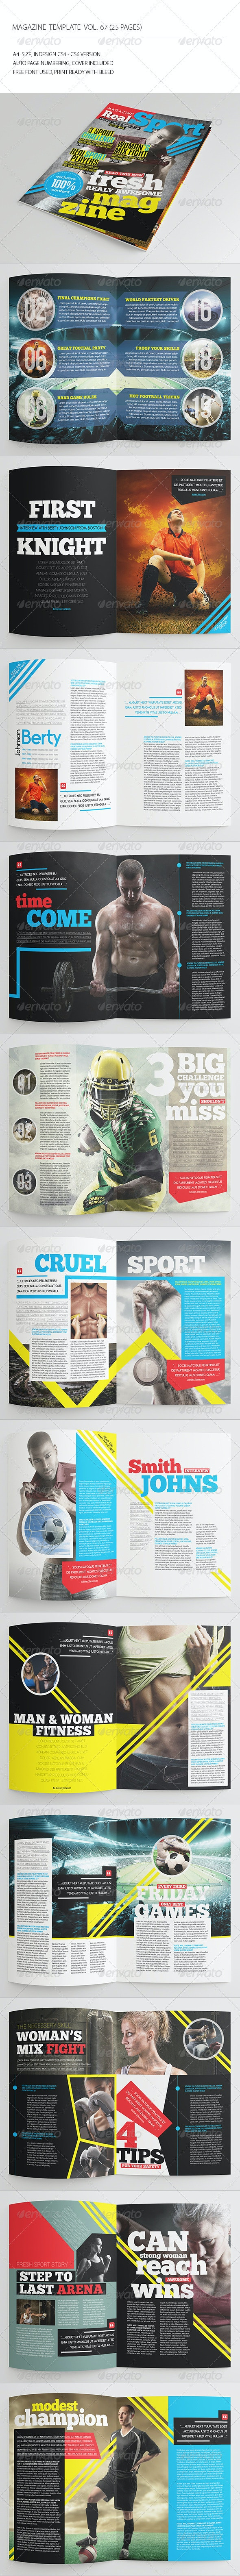 25 Pages Sport Magazine Vol67 - Magazines Print Templates